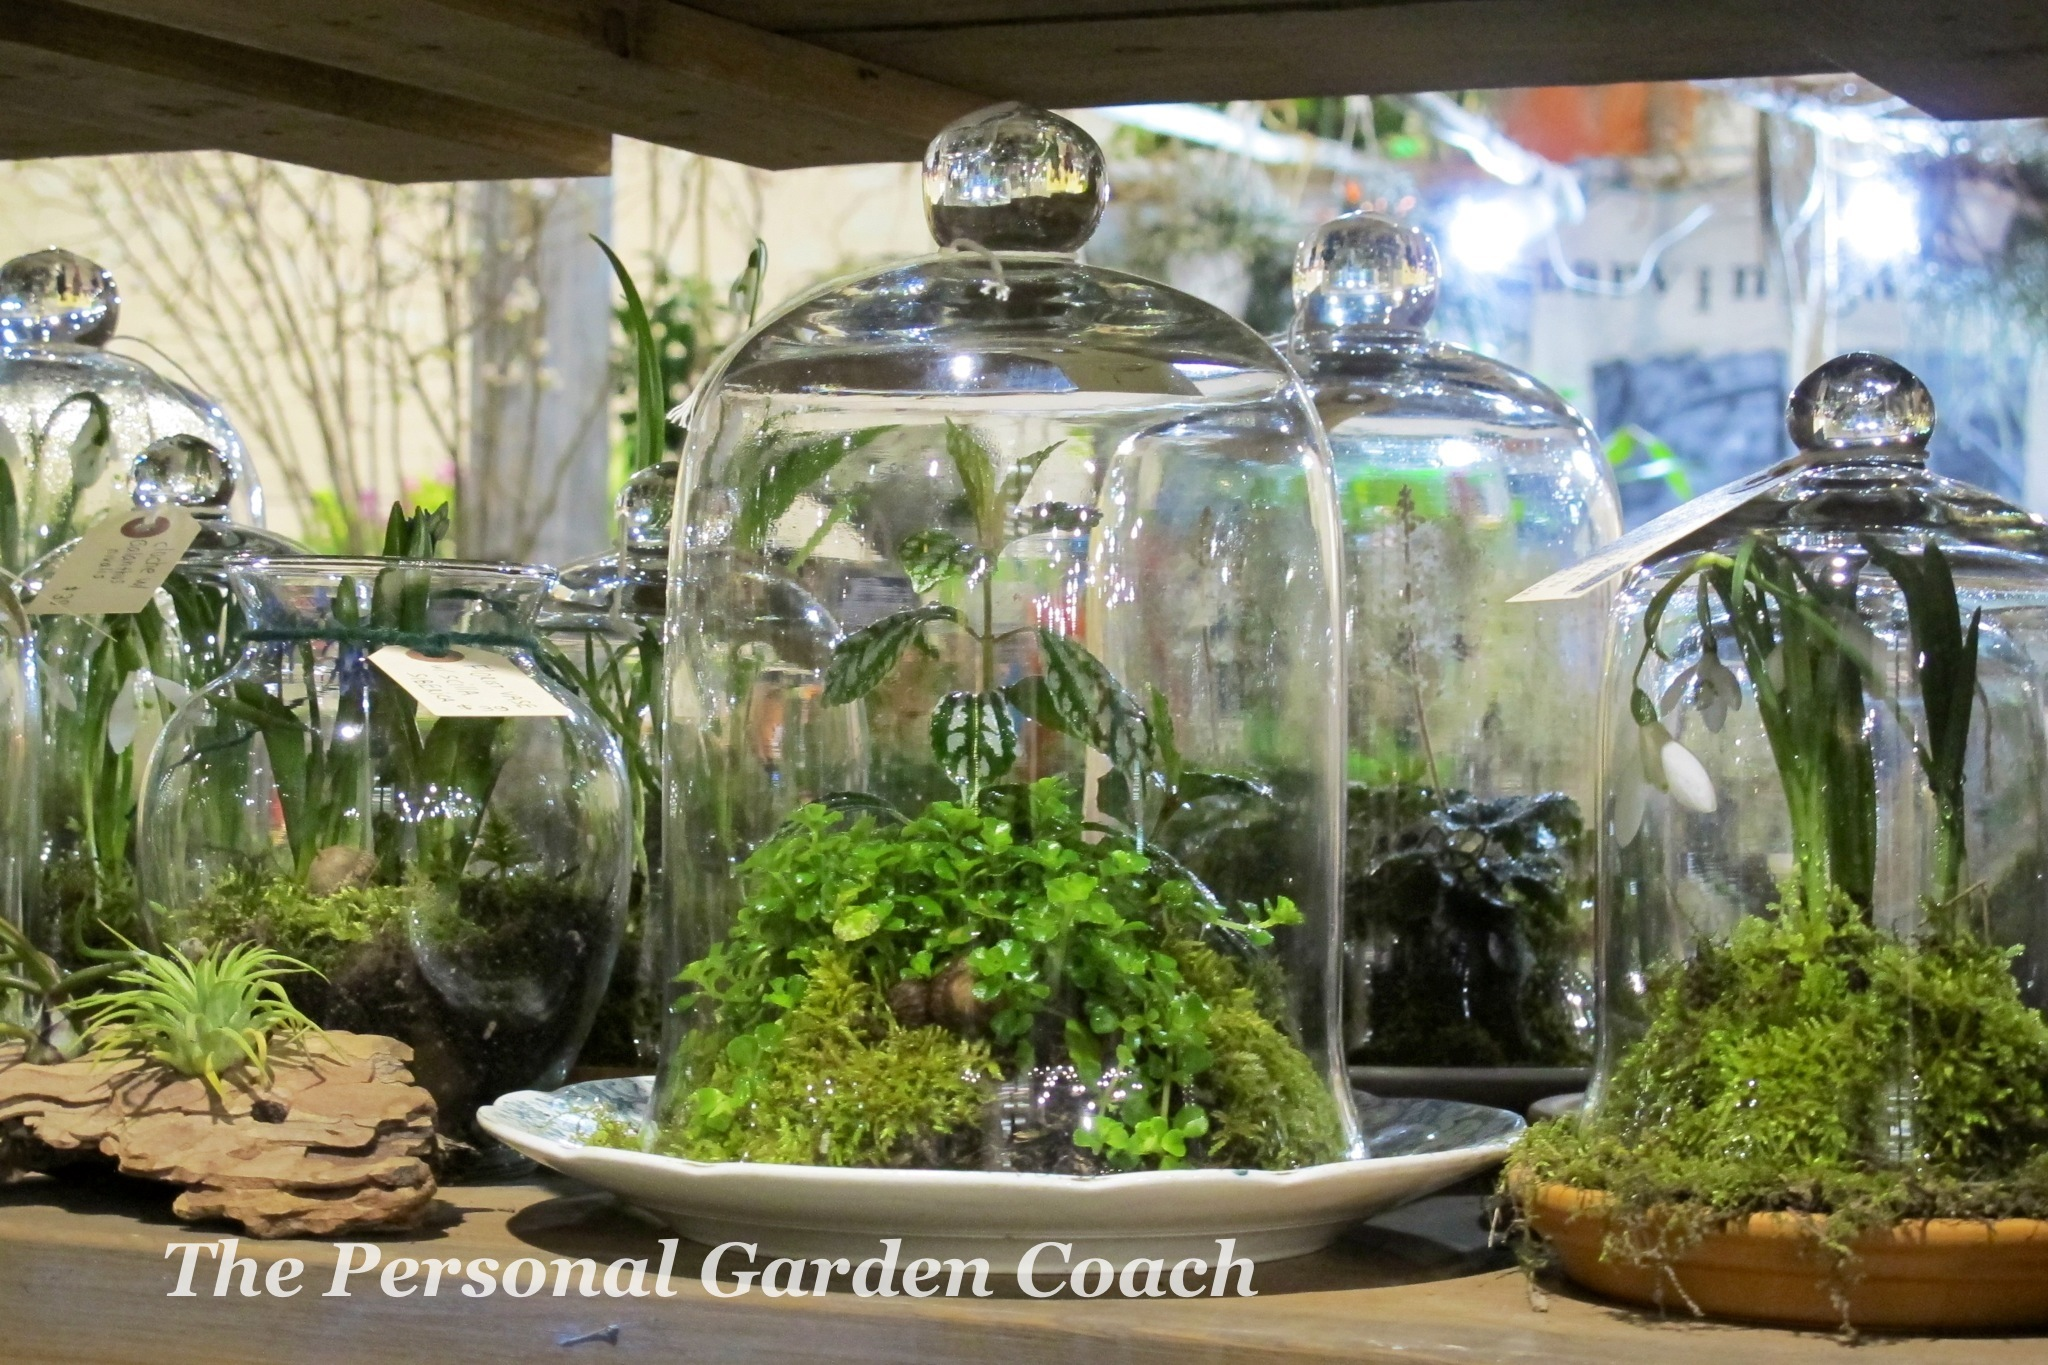 String Gardens And Terrariums Win Crowds At Philly Flower Show THE